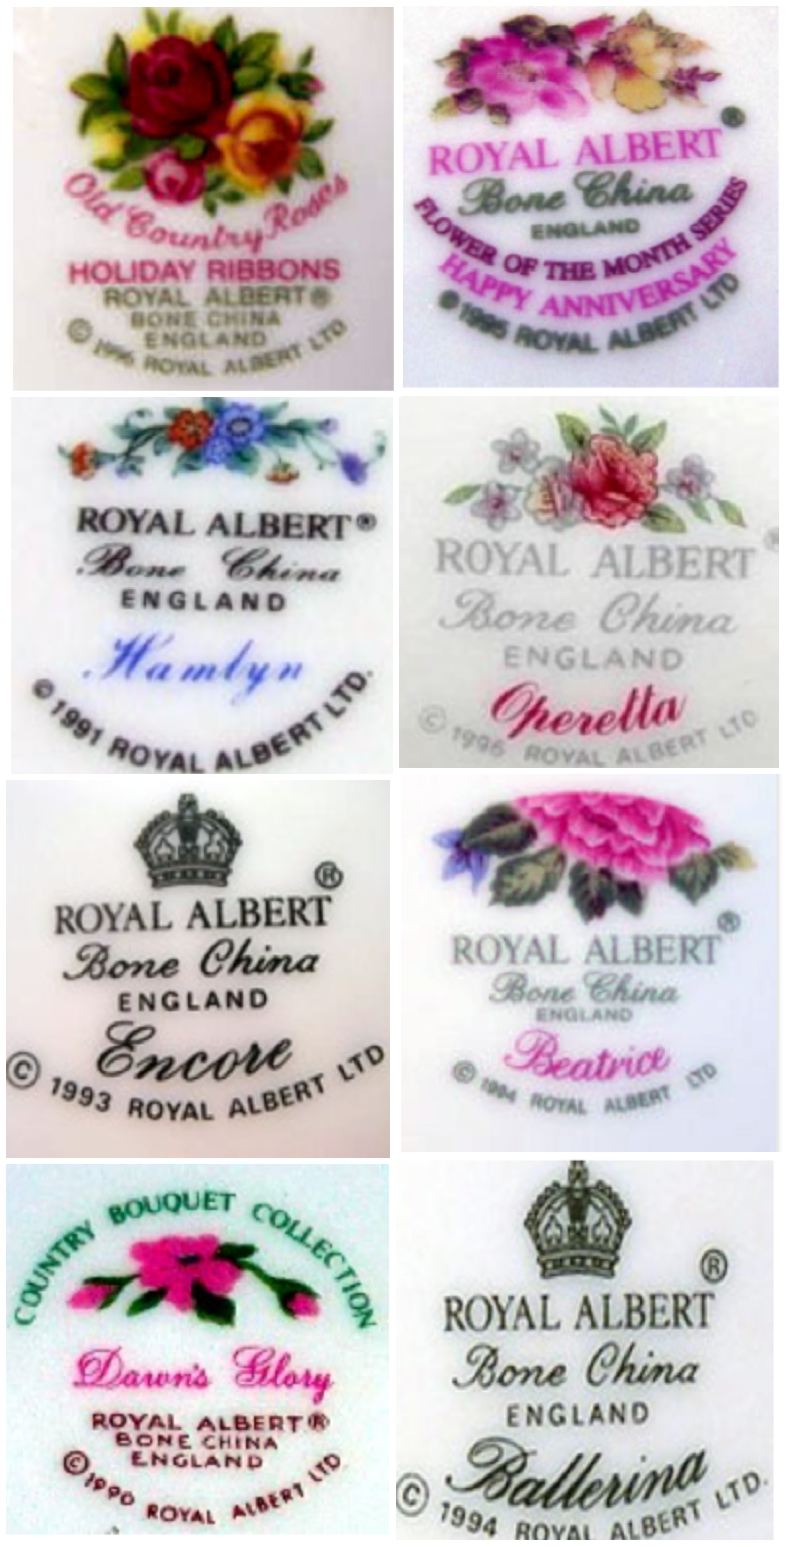 Royal albert backstamp dating quotes